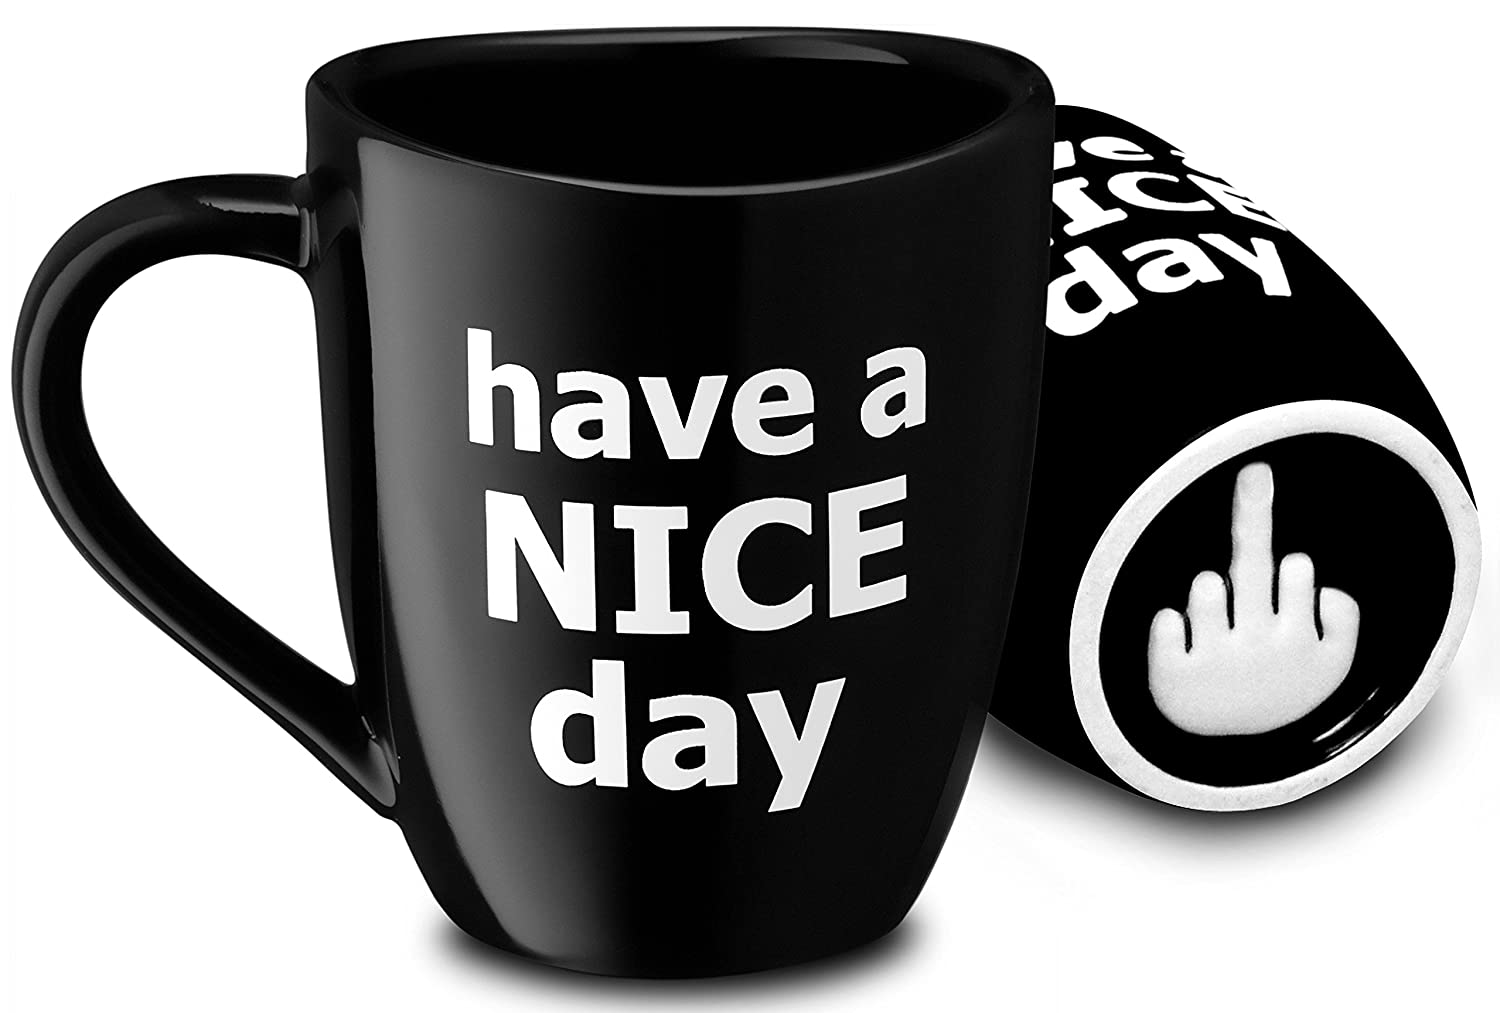 Decodyne Have a Nice Day Coffee Mug, Funny Cup with Middle Finger on the Bottom 14 oz. (Black)